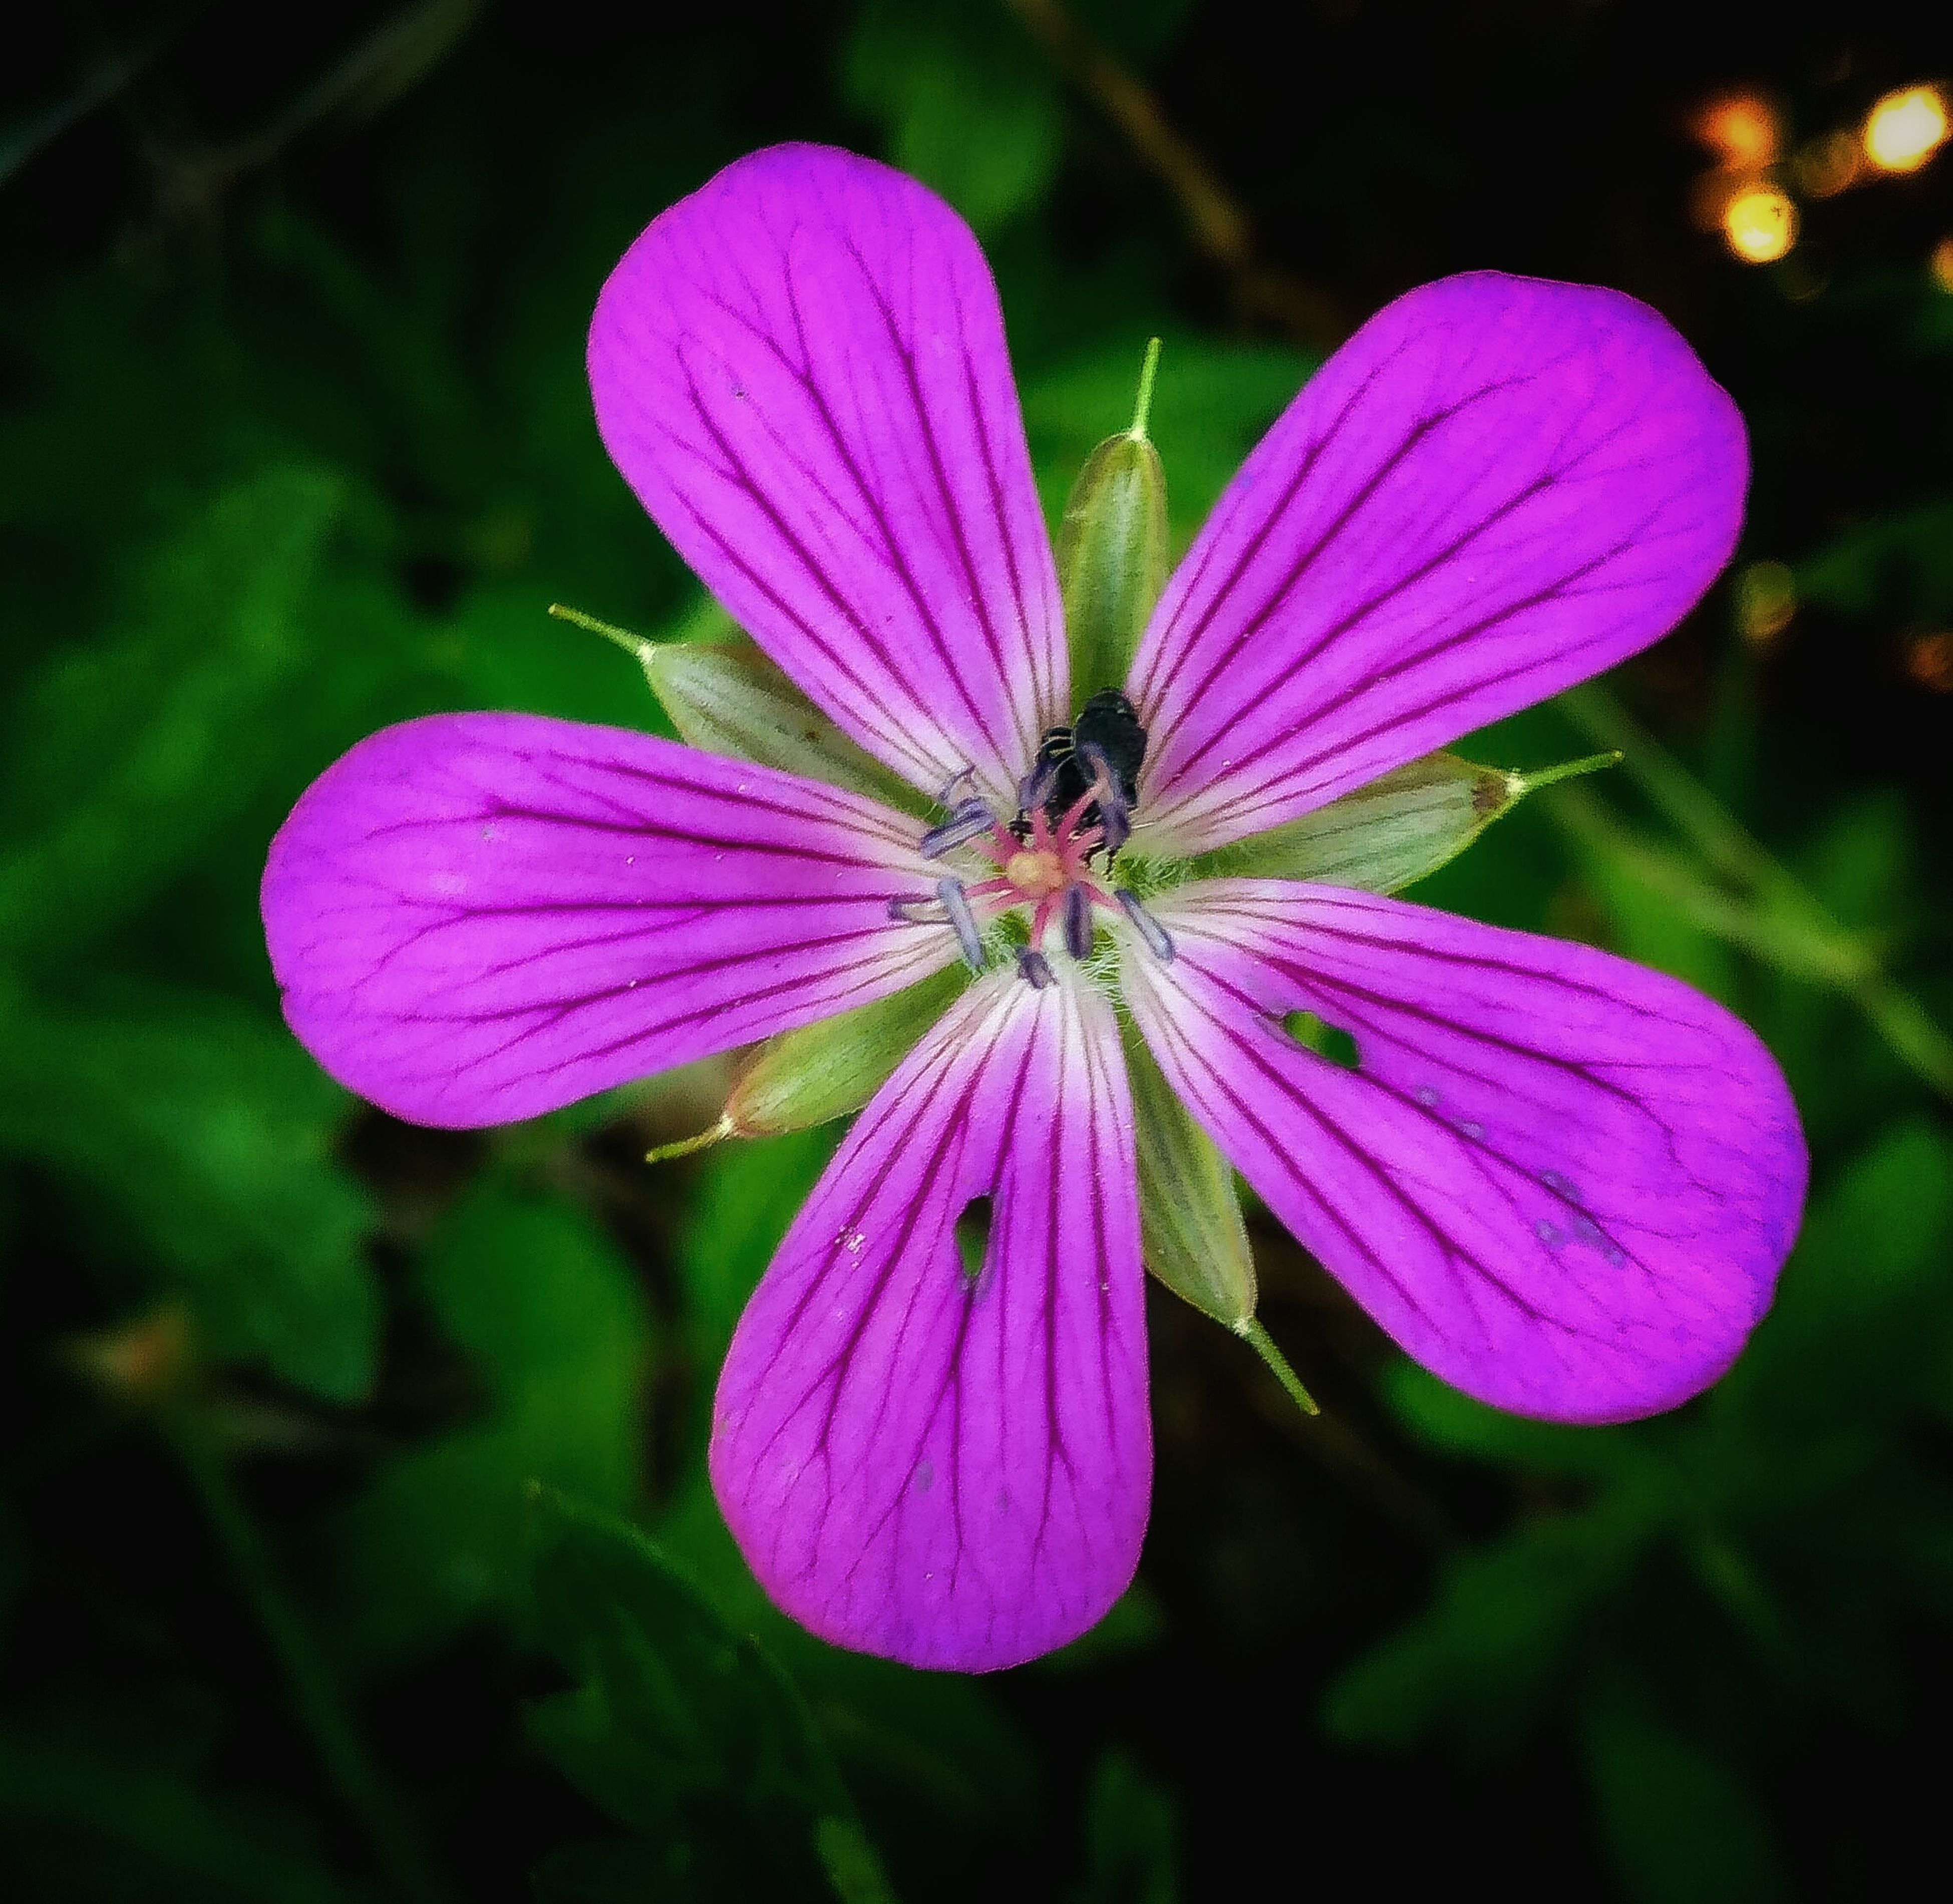 flower, purple, freshness, petal, fragility, flower head, close-up, beauty in nature, growth, focus on foreground, nature, pollen, blooming, stamen, plant, in bloom, pink color, outdoors, day, no people, blossom, botany, selective focus, natural pattern, blue, softness